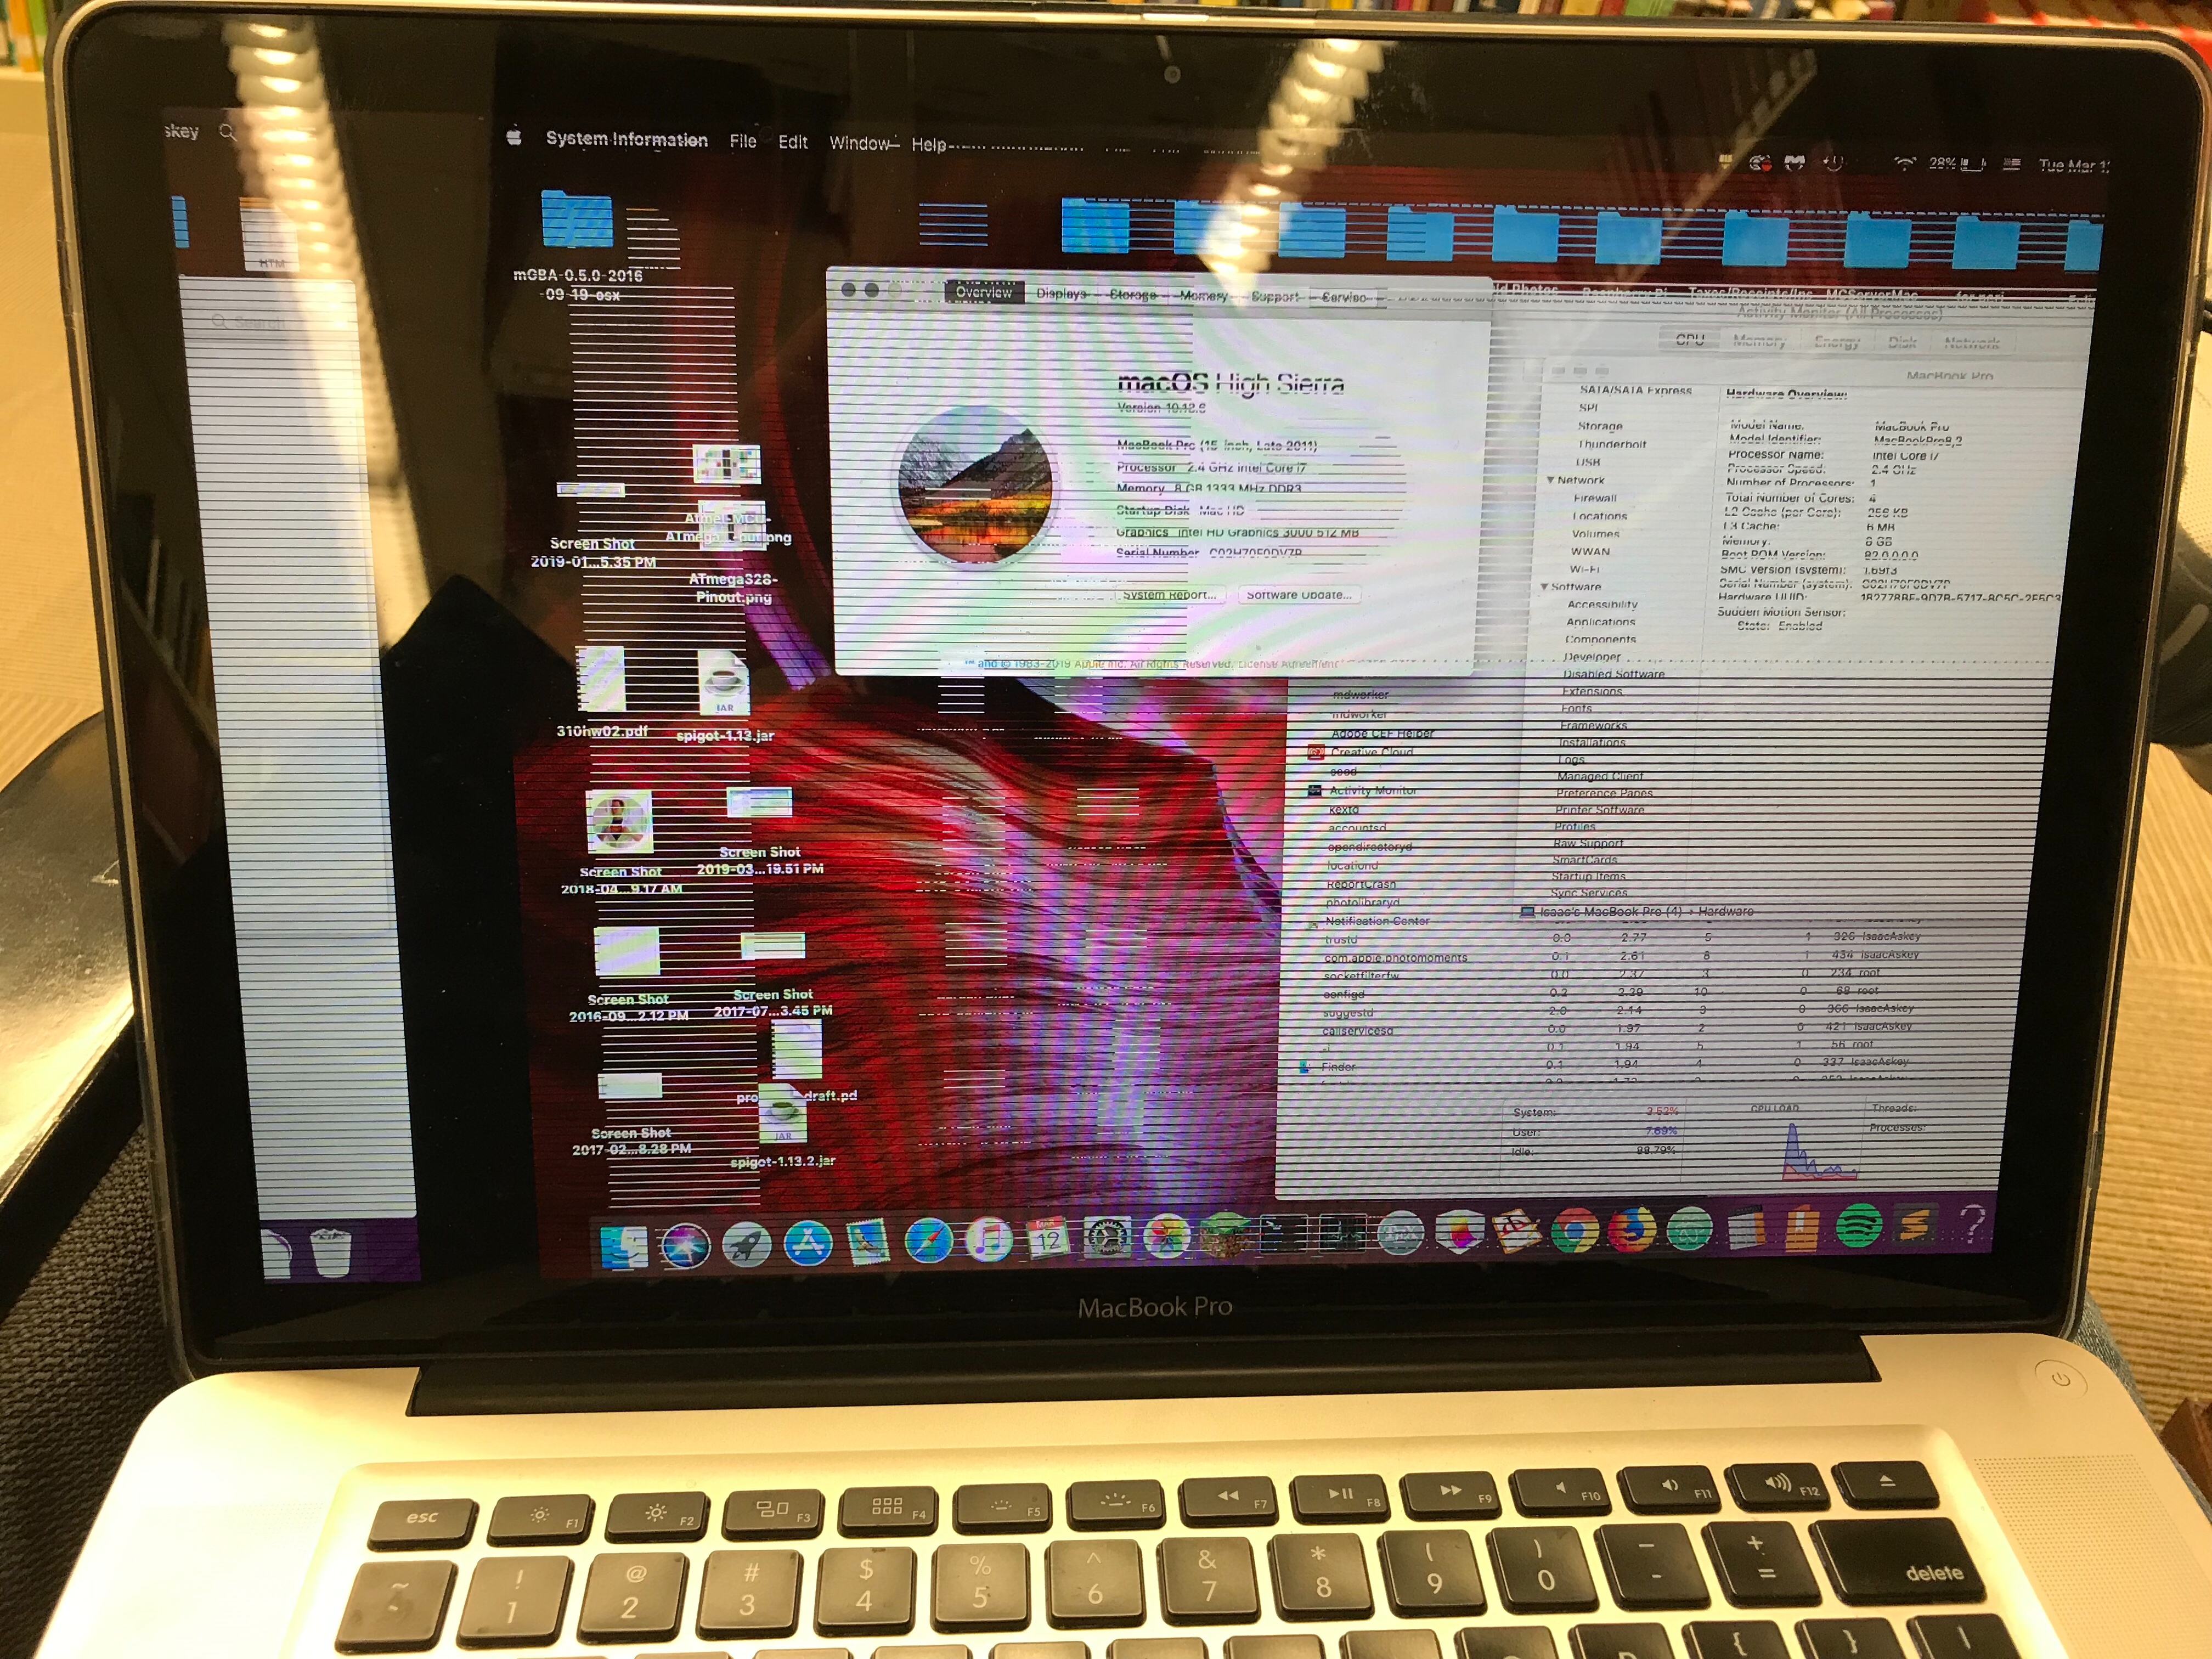 Late MacBook Pro Late 2011 Constantly Cra… - Apple Community